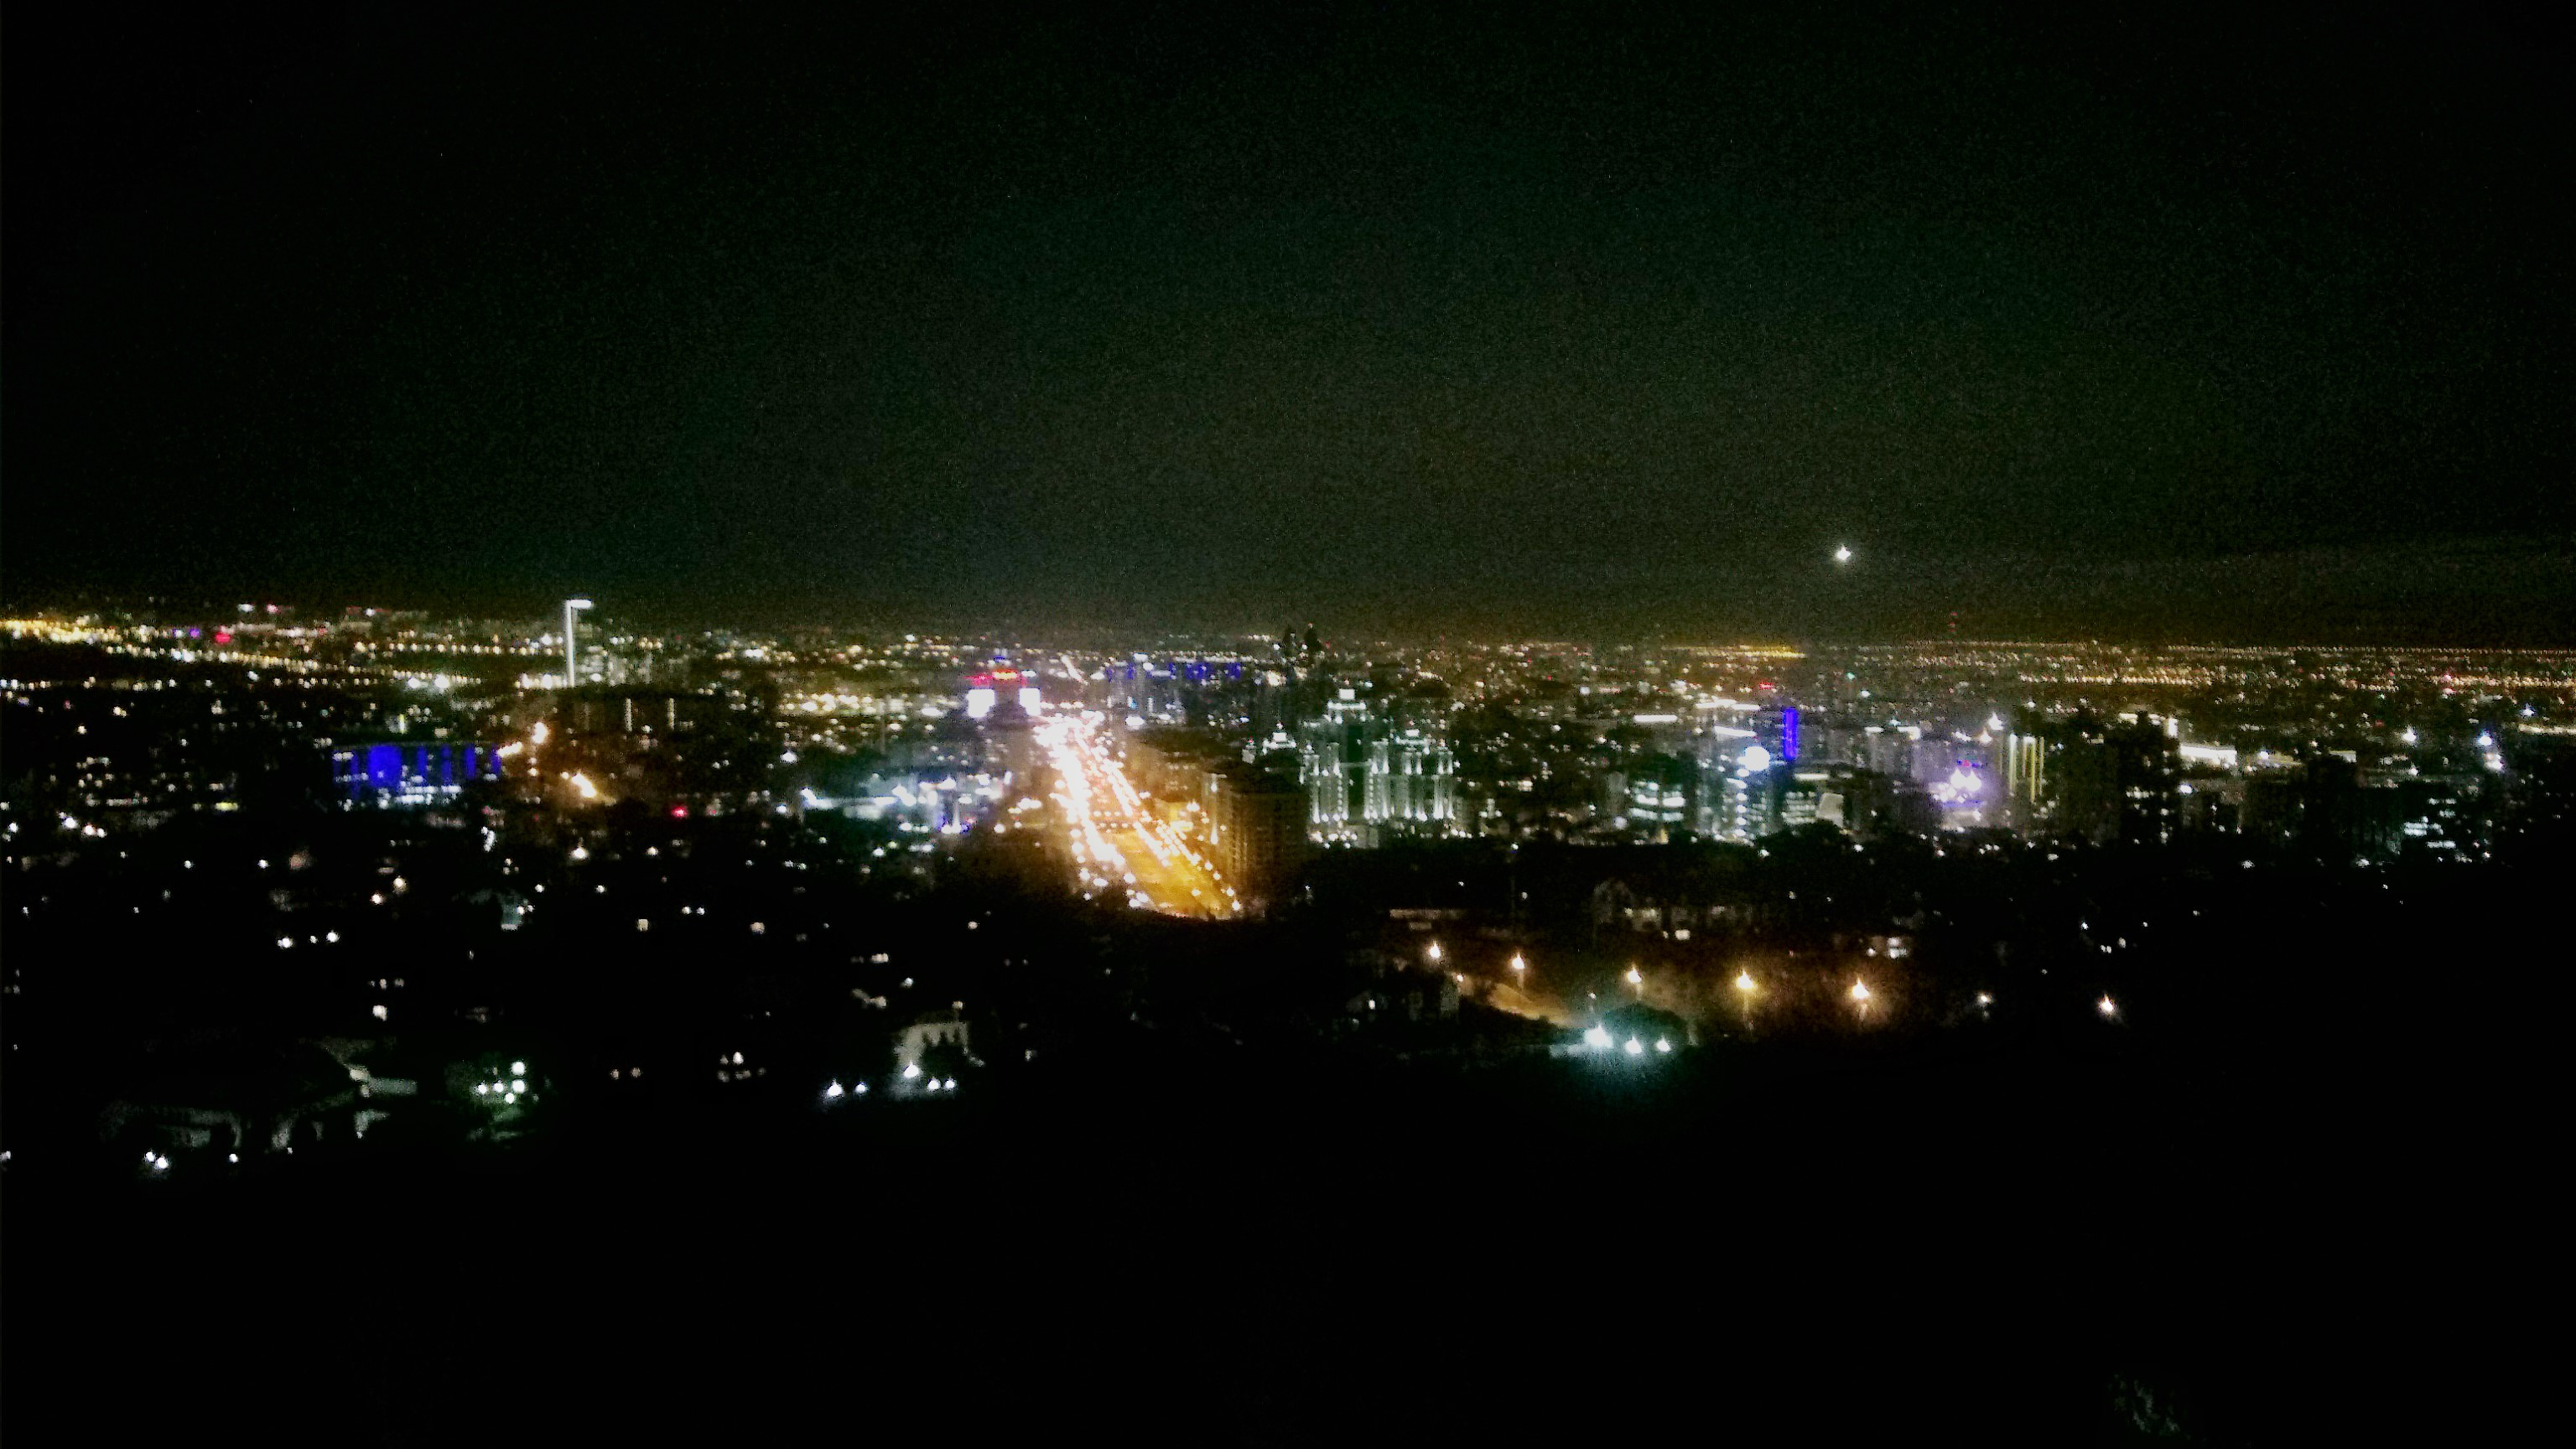 Stunning view of ALmaty, the former Kazakh capital at night